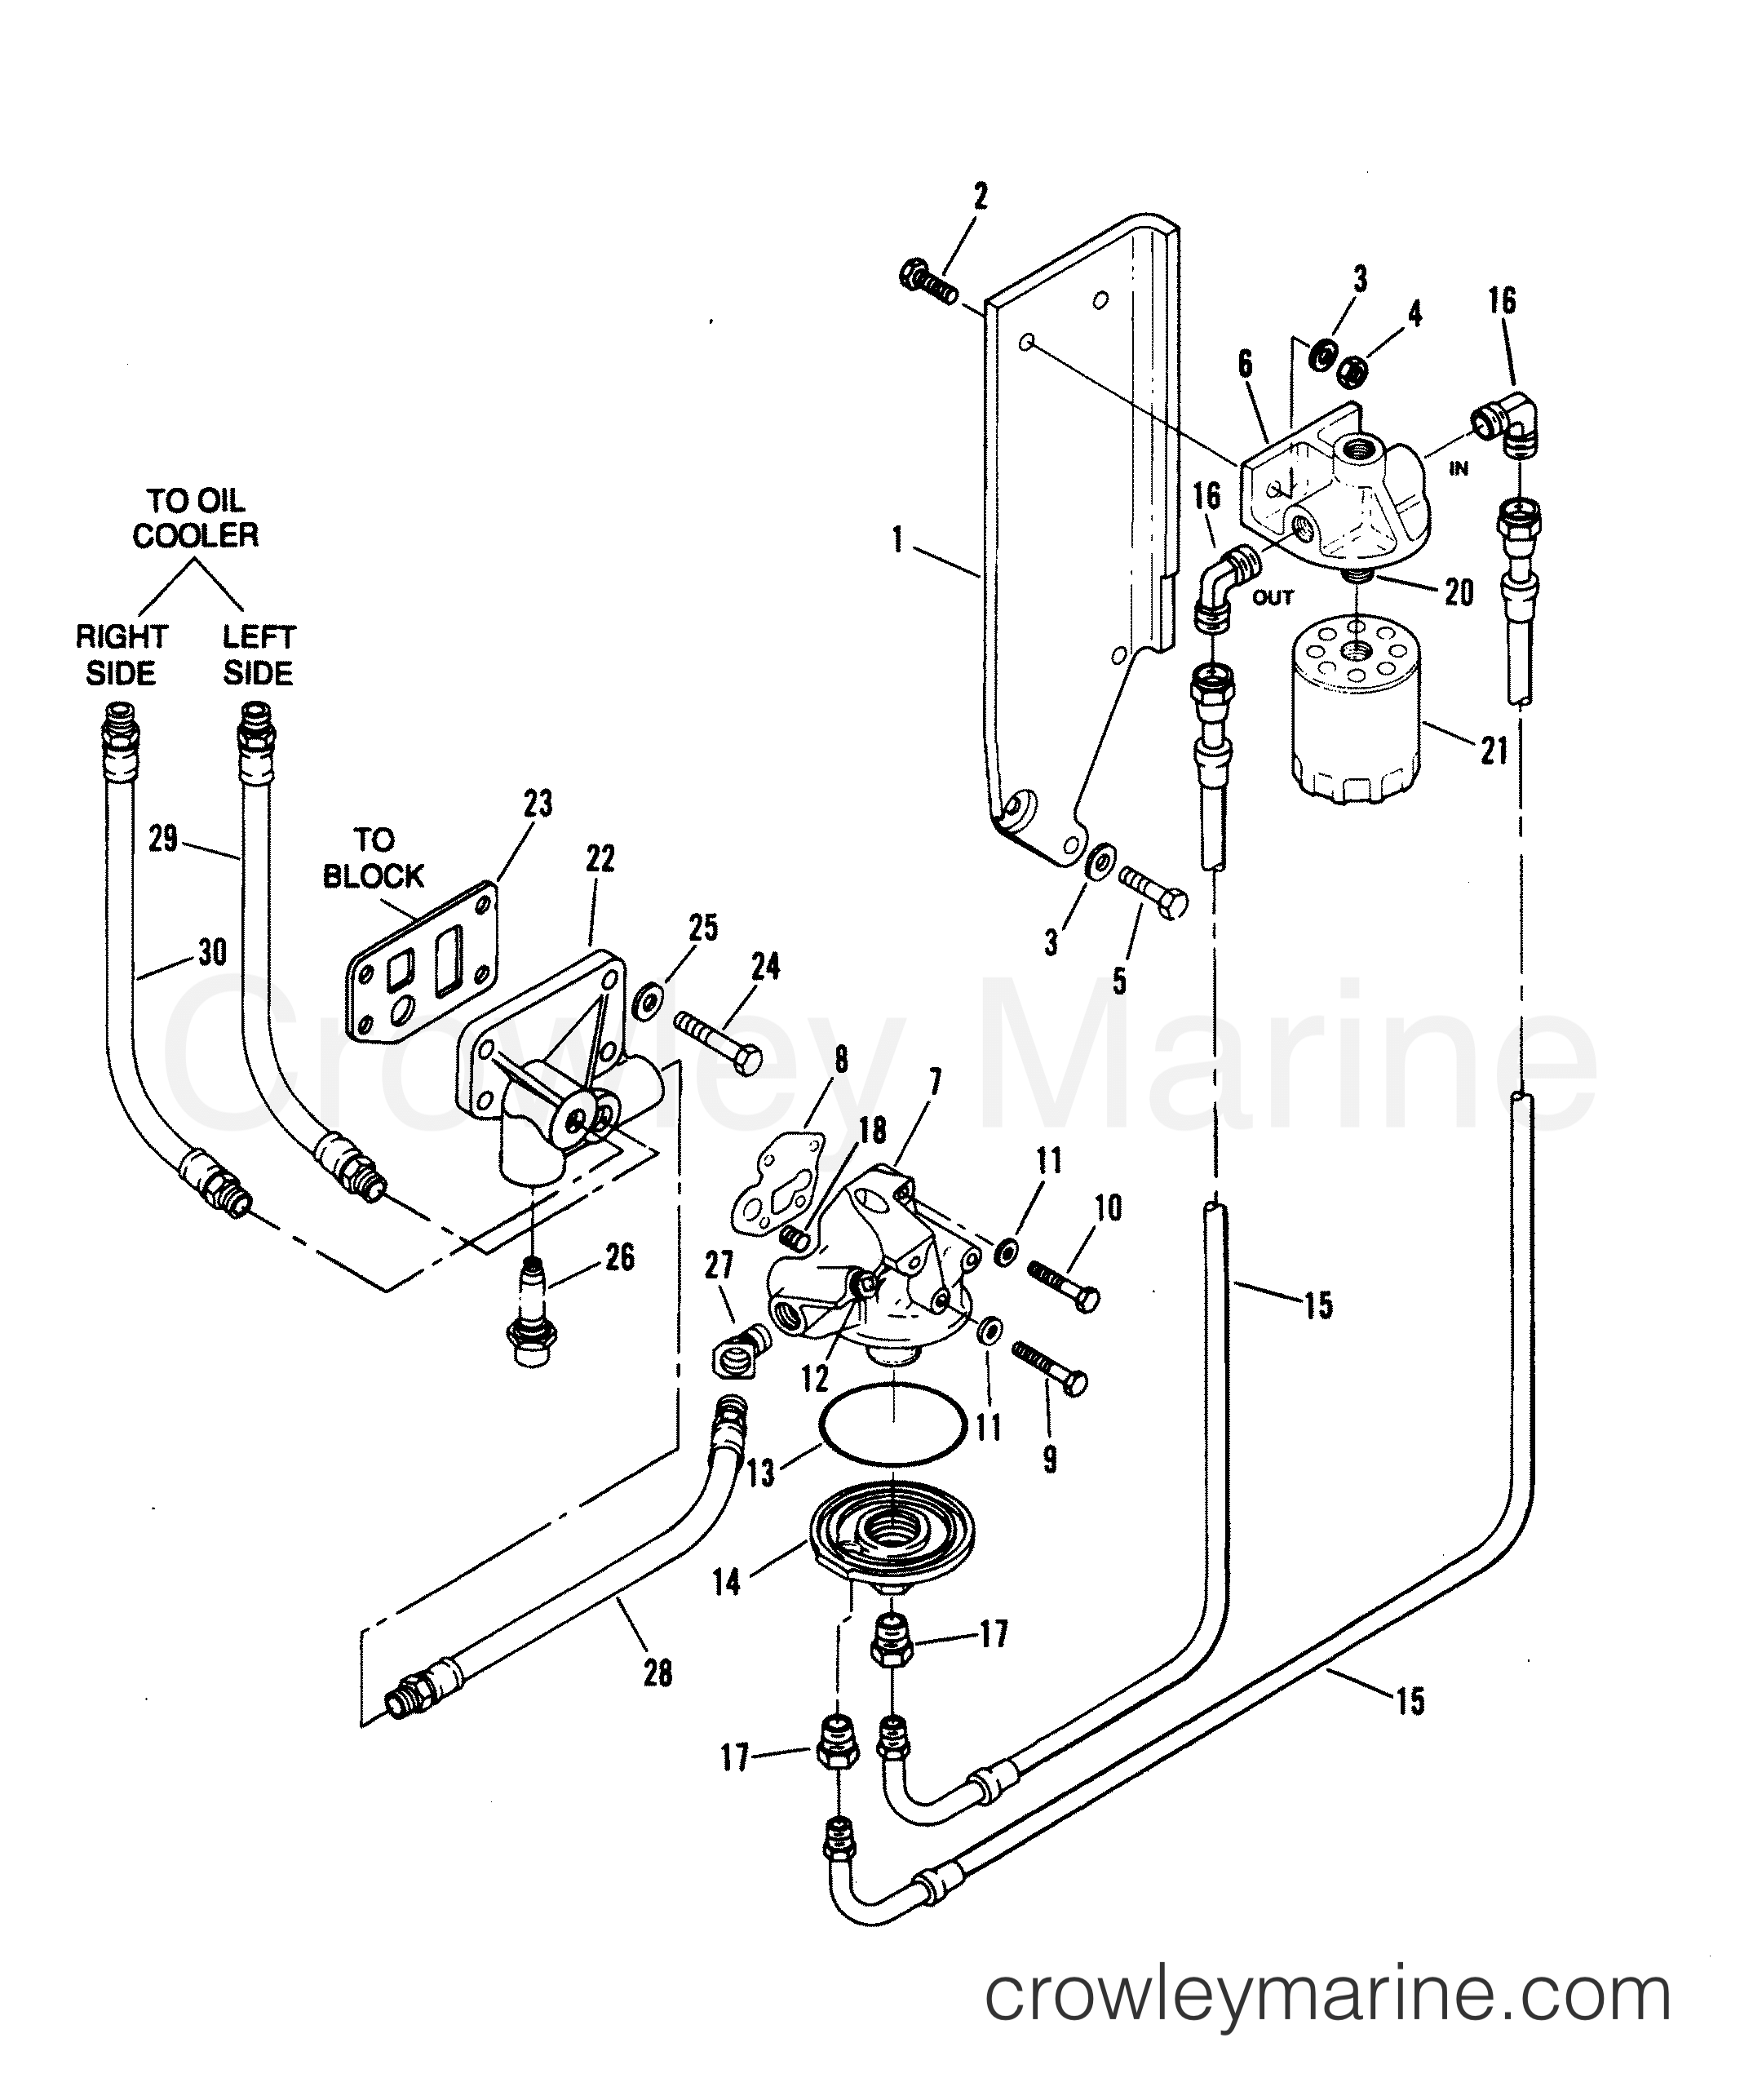 Rotax 380 Engine Diagram Auto Electrical Wiring Electric Oven Pglef385cs2 Range Oil Filter And Hoses Inboard